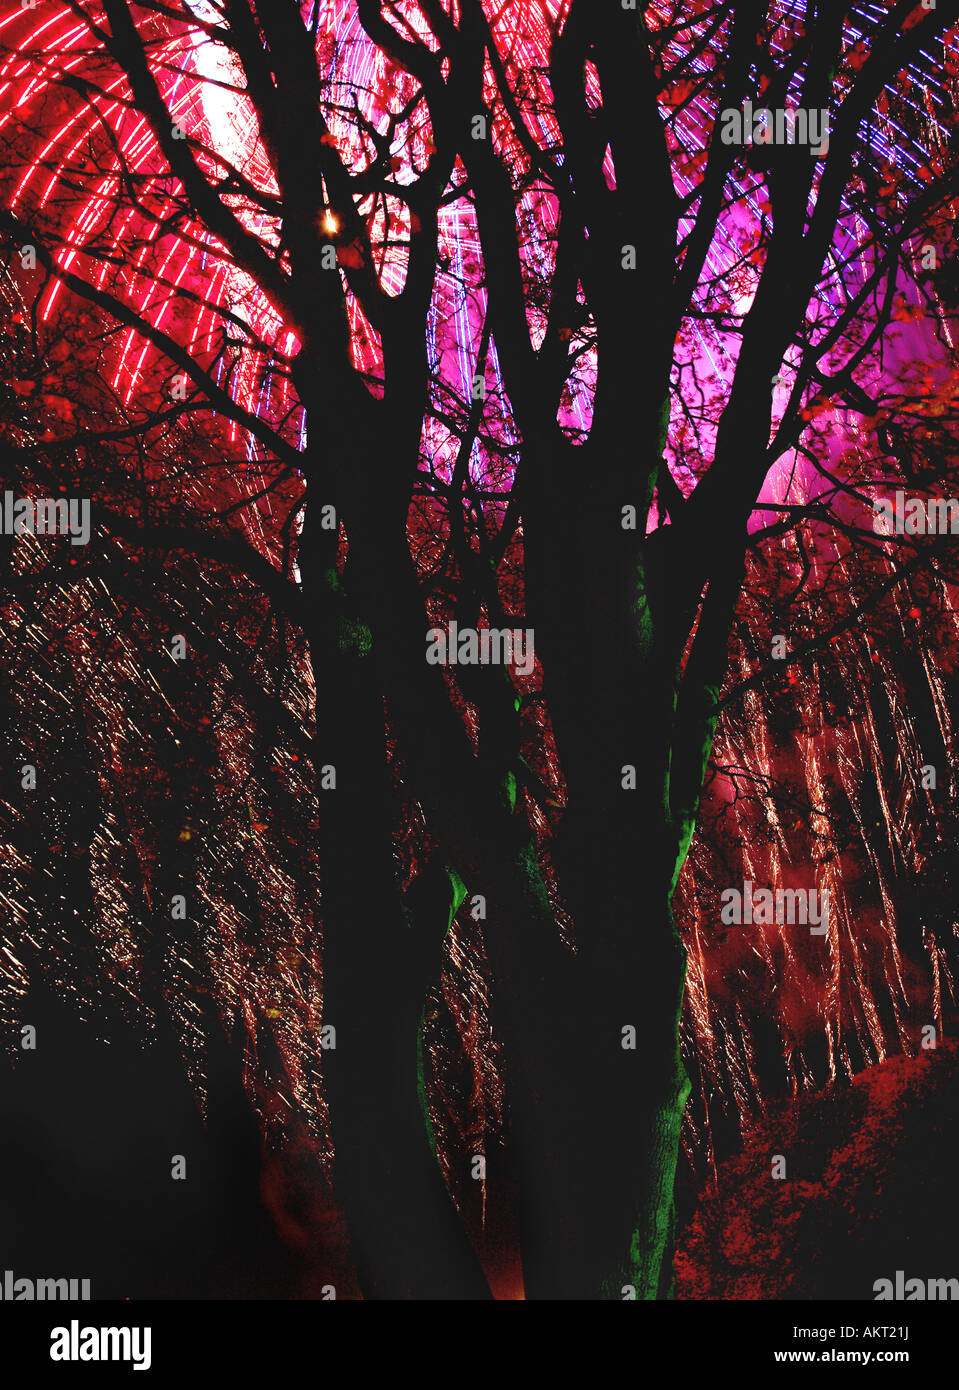 Fireworks Dundee Lochee park fireworks looking through trees - Stock Image